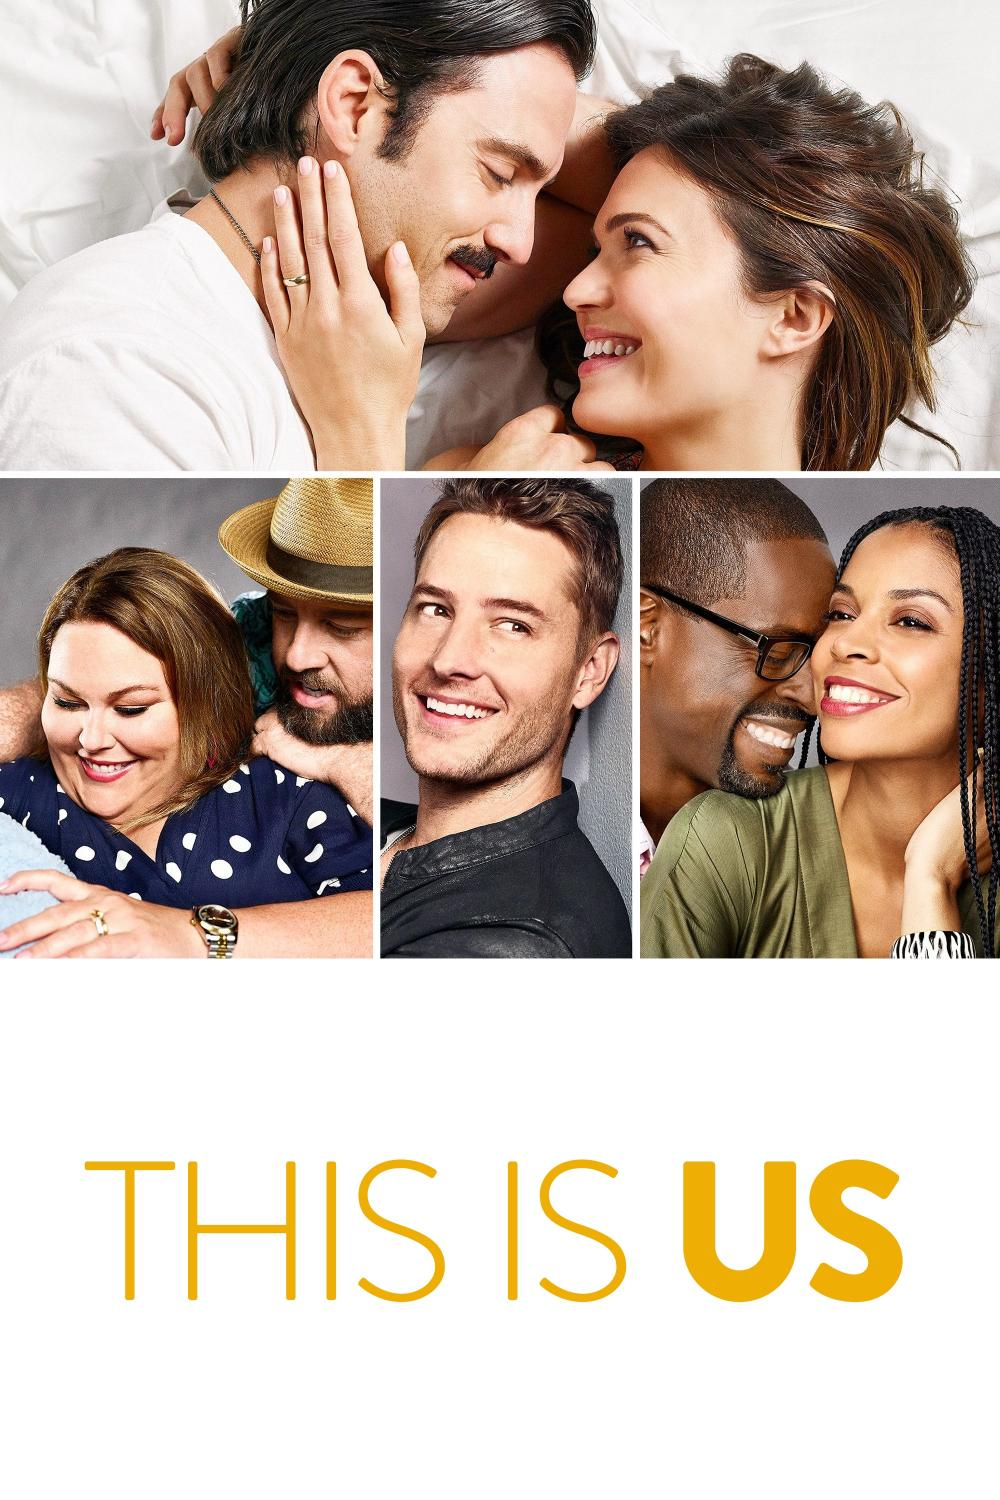 This Is Us S04E08 Sorry 1080p AMZN WEB-DL DDP5 1 H 264-KiNGS